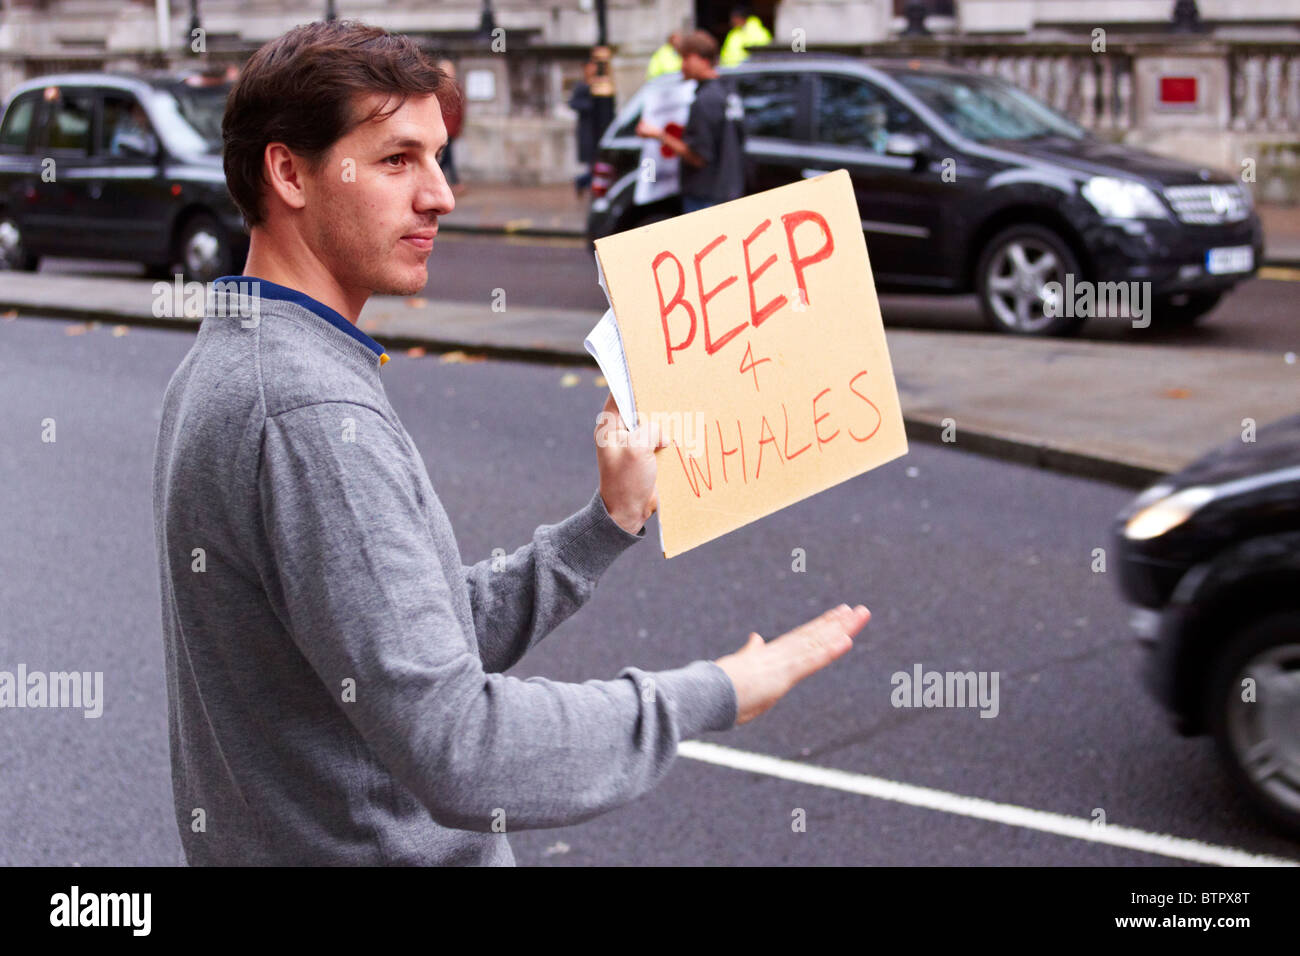 Protester during an anti-whaling protest outside the Japanese embassy - Stock Image